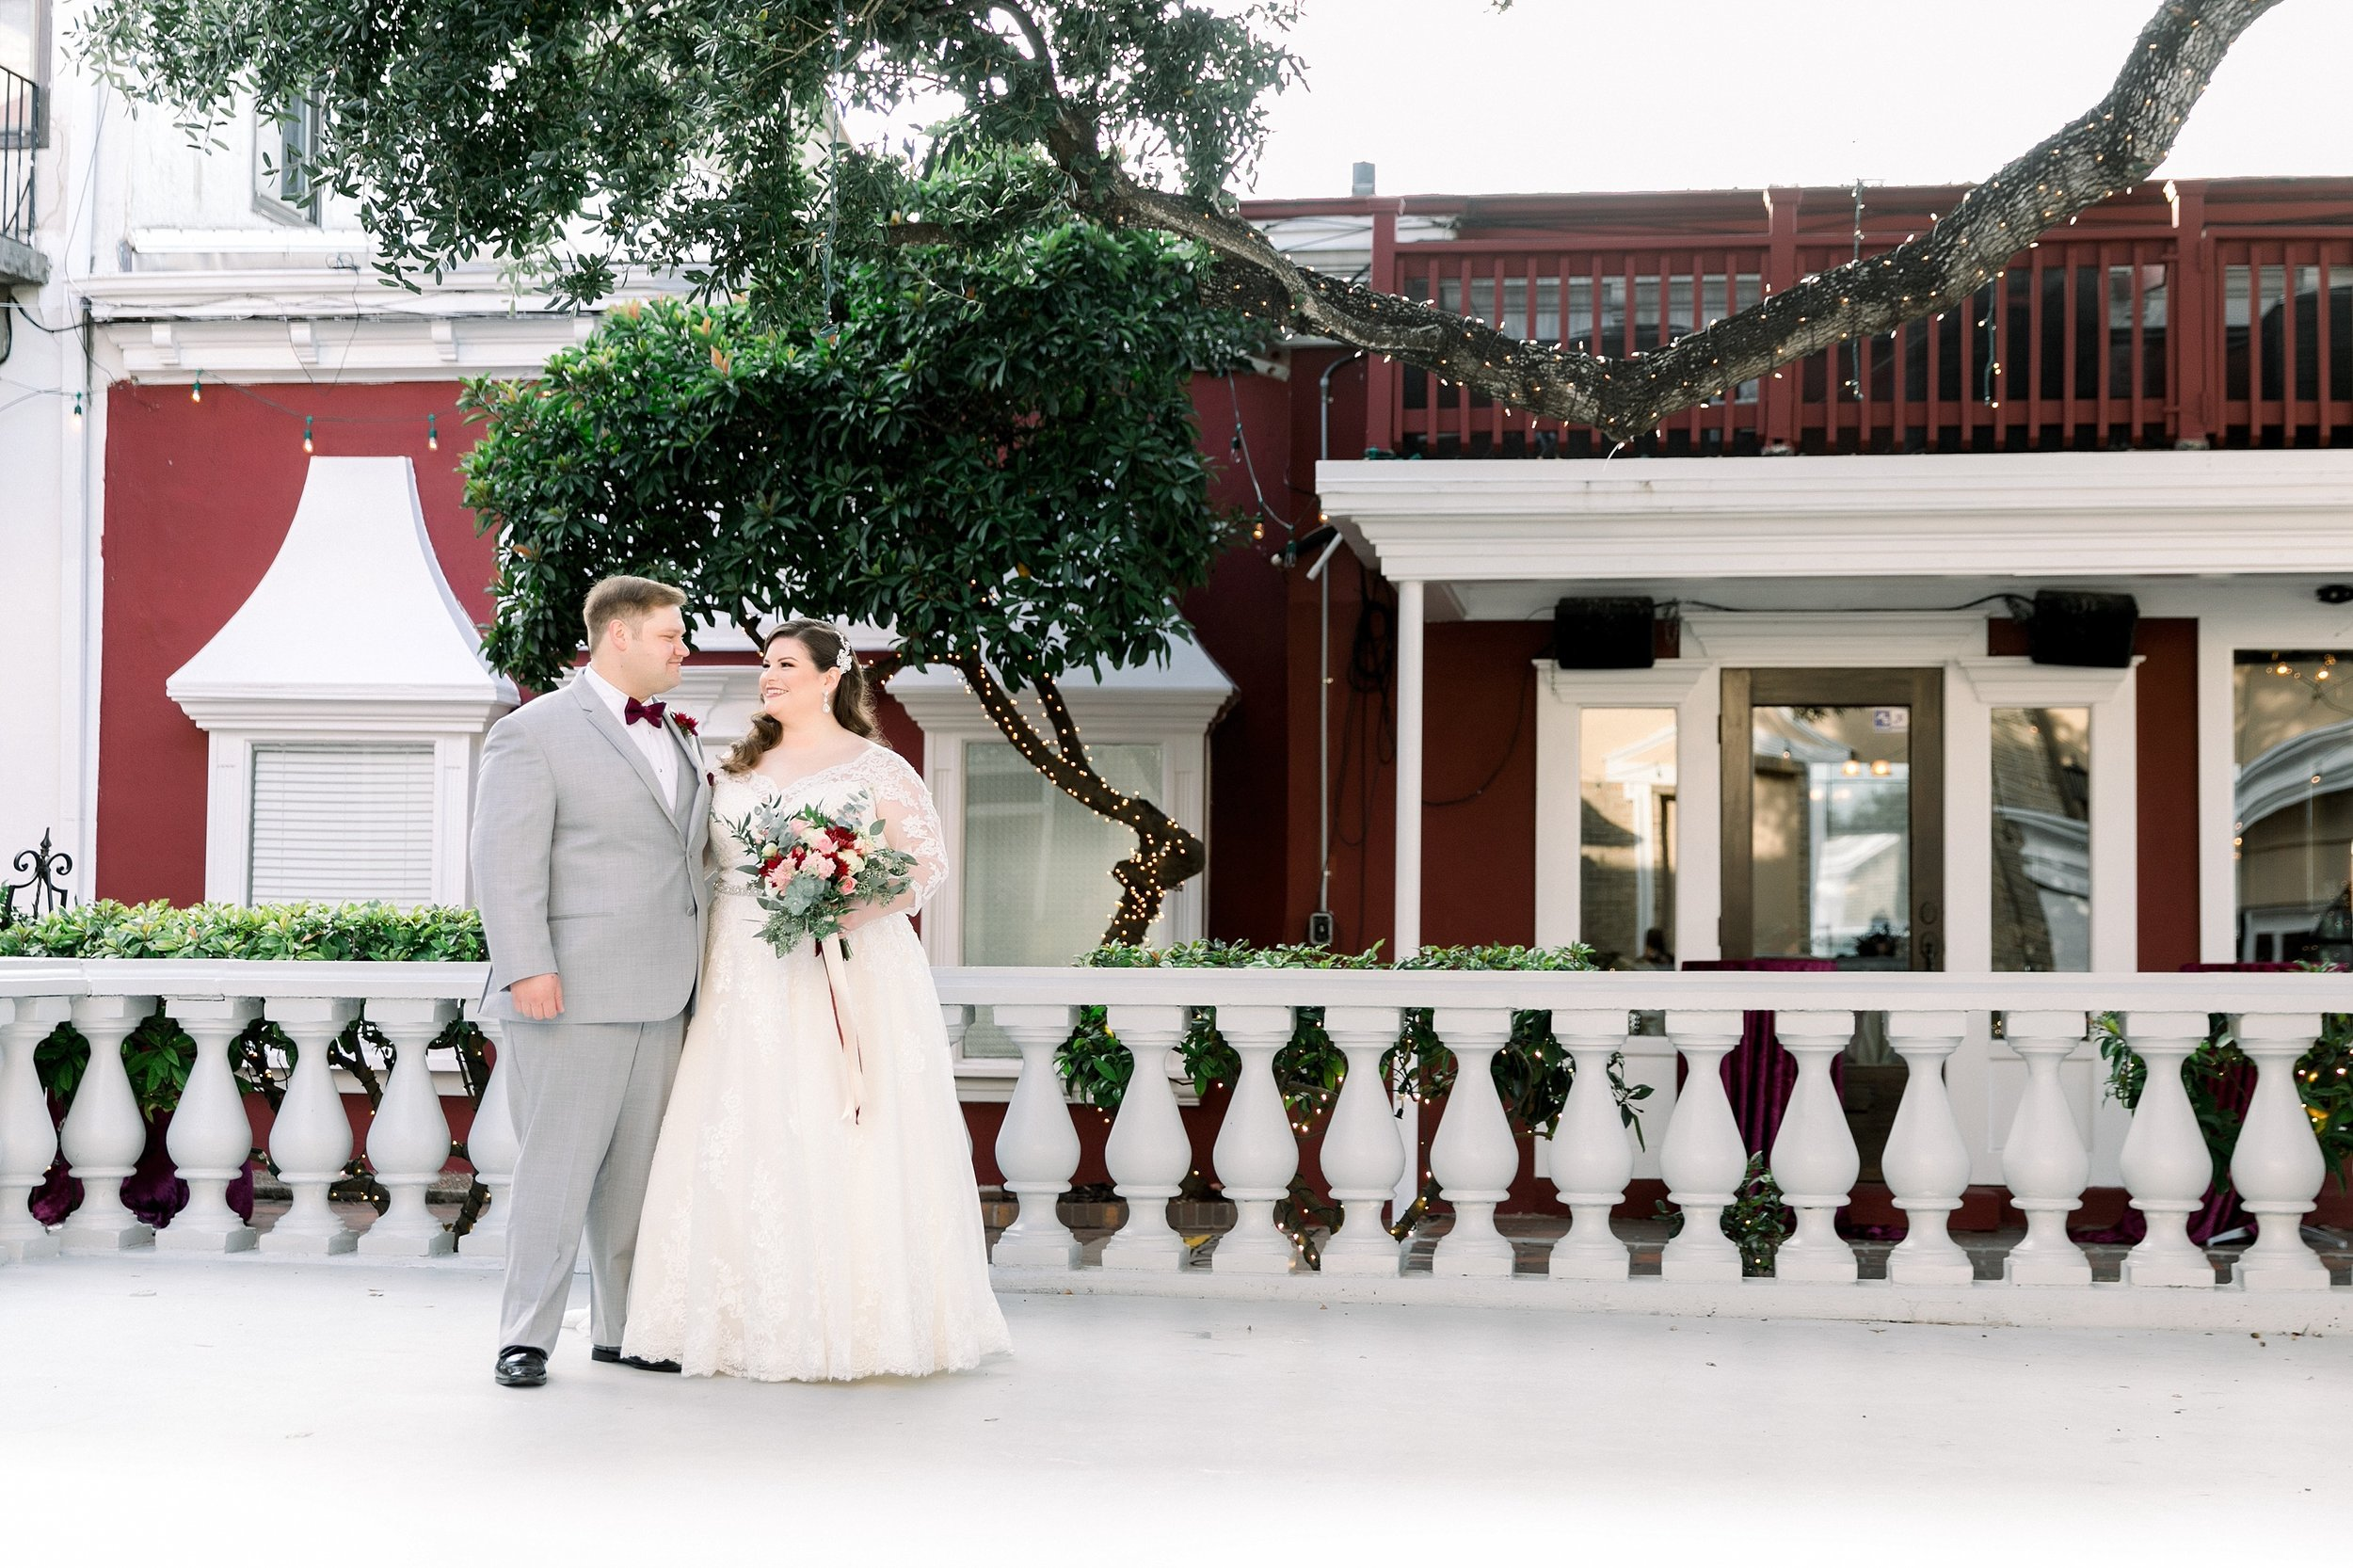 gaslight-at-courtyard-square-corpus-christi-wedding-omni-hotel-fall-winter-wedding-texas-wedding-photographer-lauren-pinson-0044.jpg